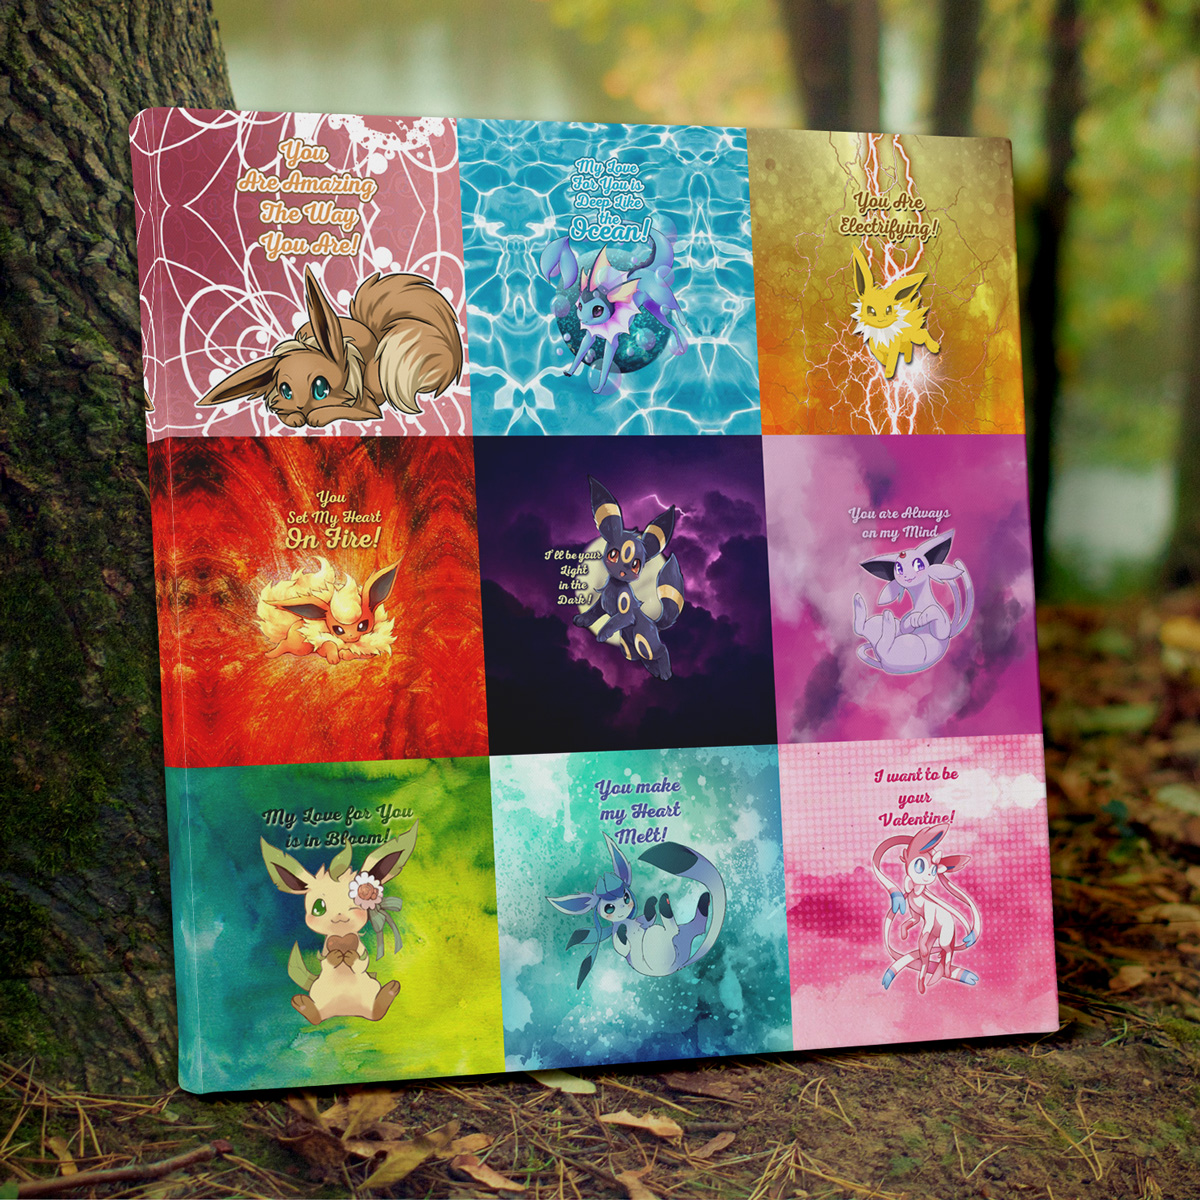 Enter for a chance to win Eeveelution Wall Art Canvas valued at $500 OR a $50 Anime Ape Gift Card OR a $20 Anime Ape Gift Card! Multiple Winners! Giveaway Image